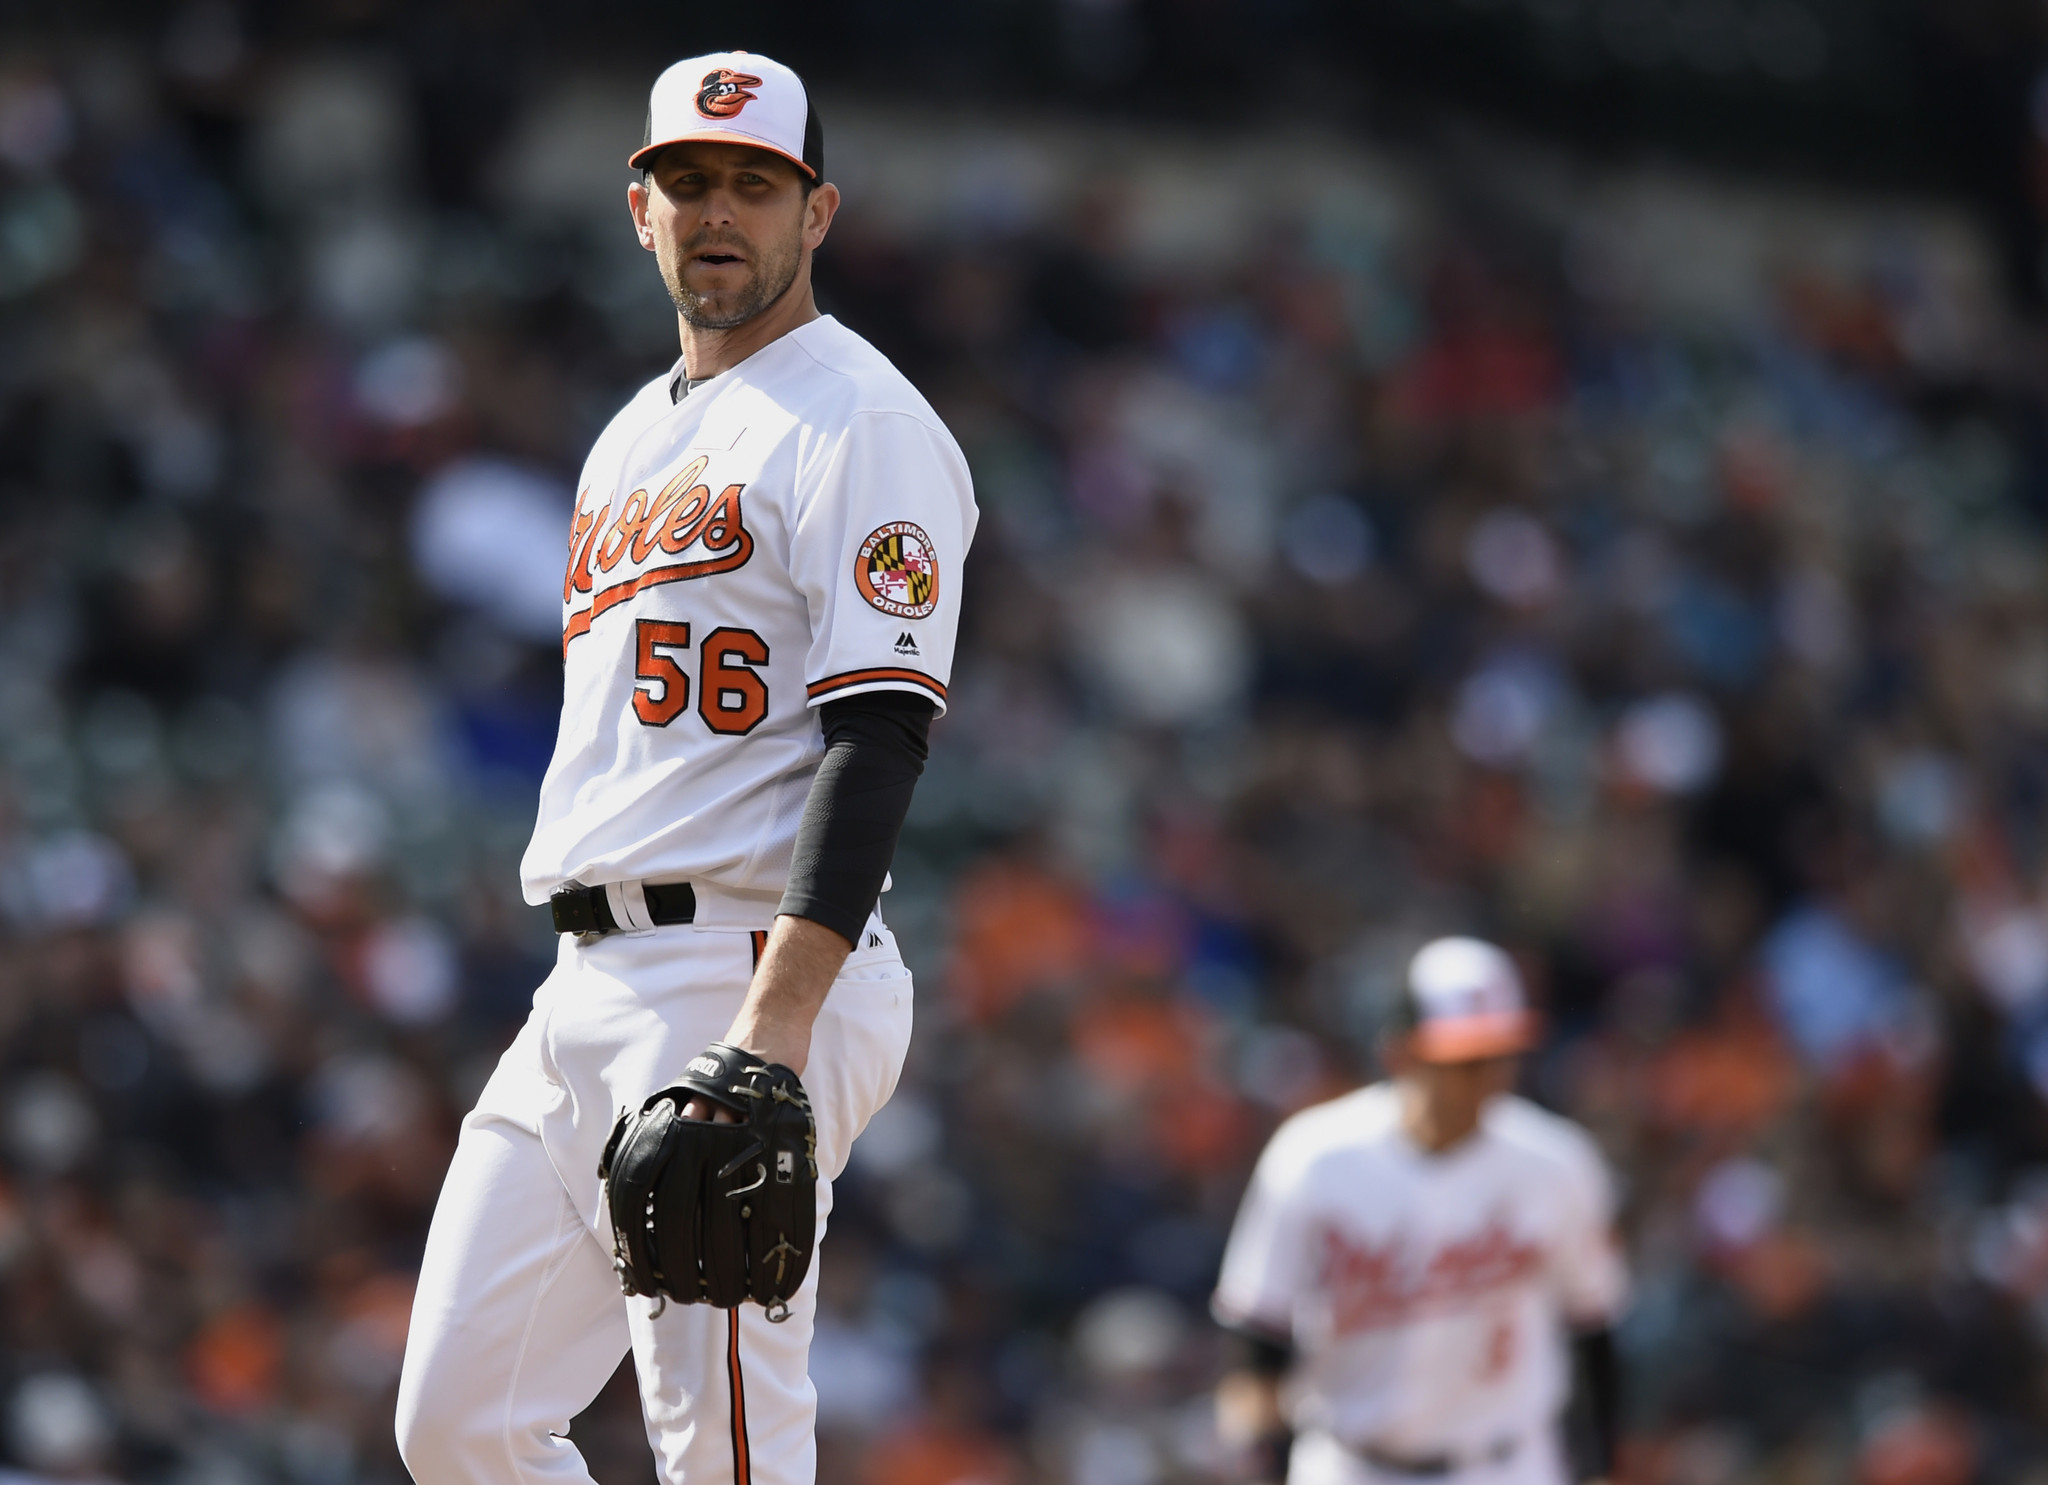 Bal-sunday-s-blemish-for-darren-o-day-orioles-bullpen-don-t-detract-from-game-s-best-relief-corps-20160515